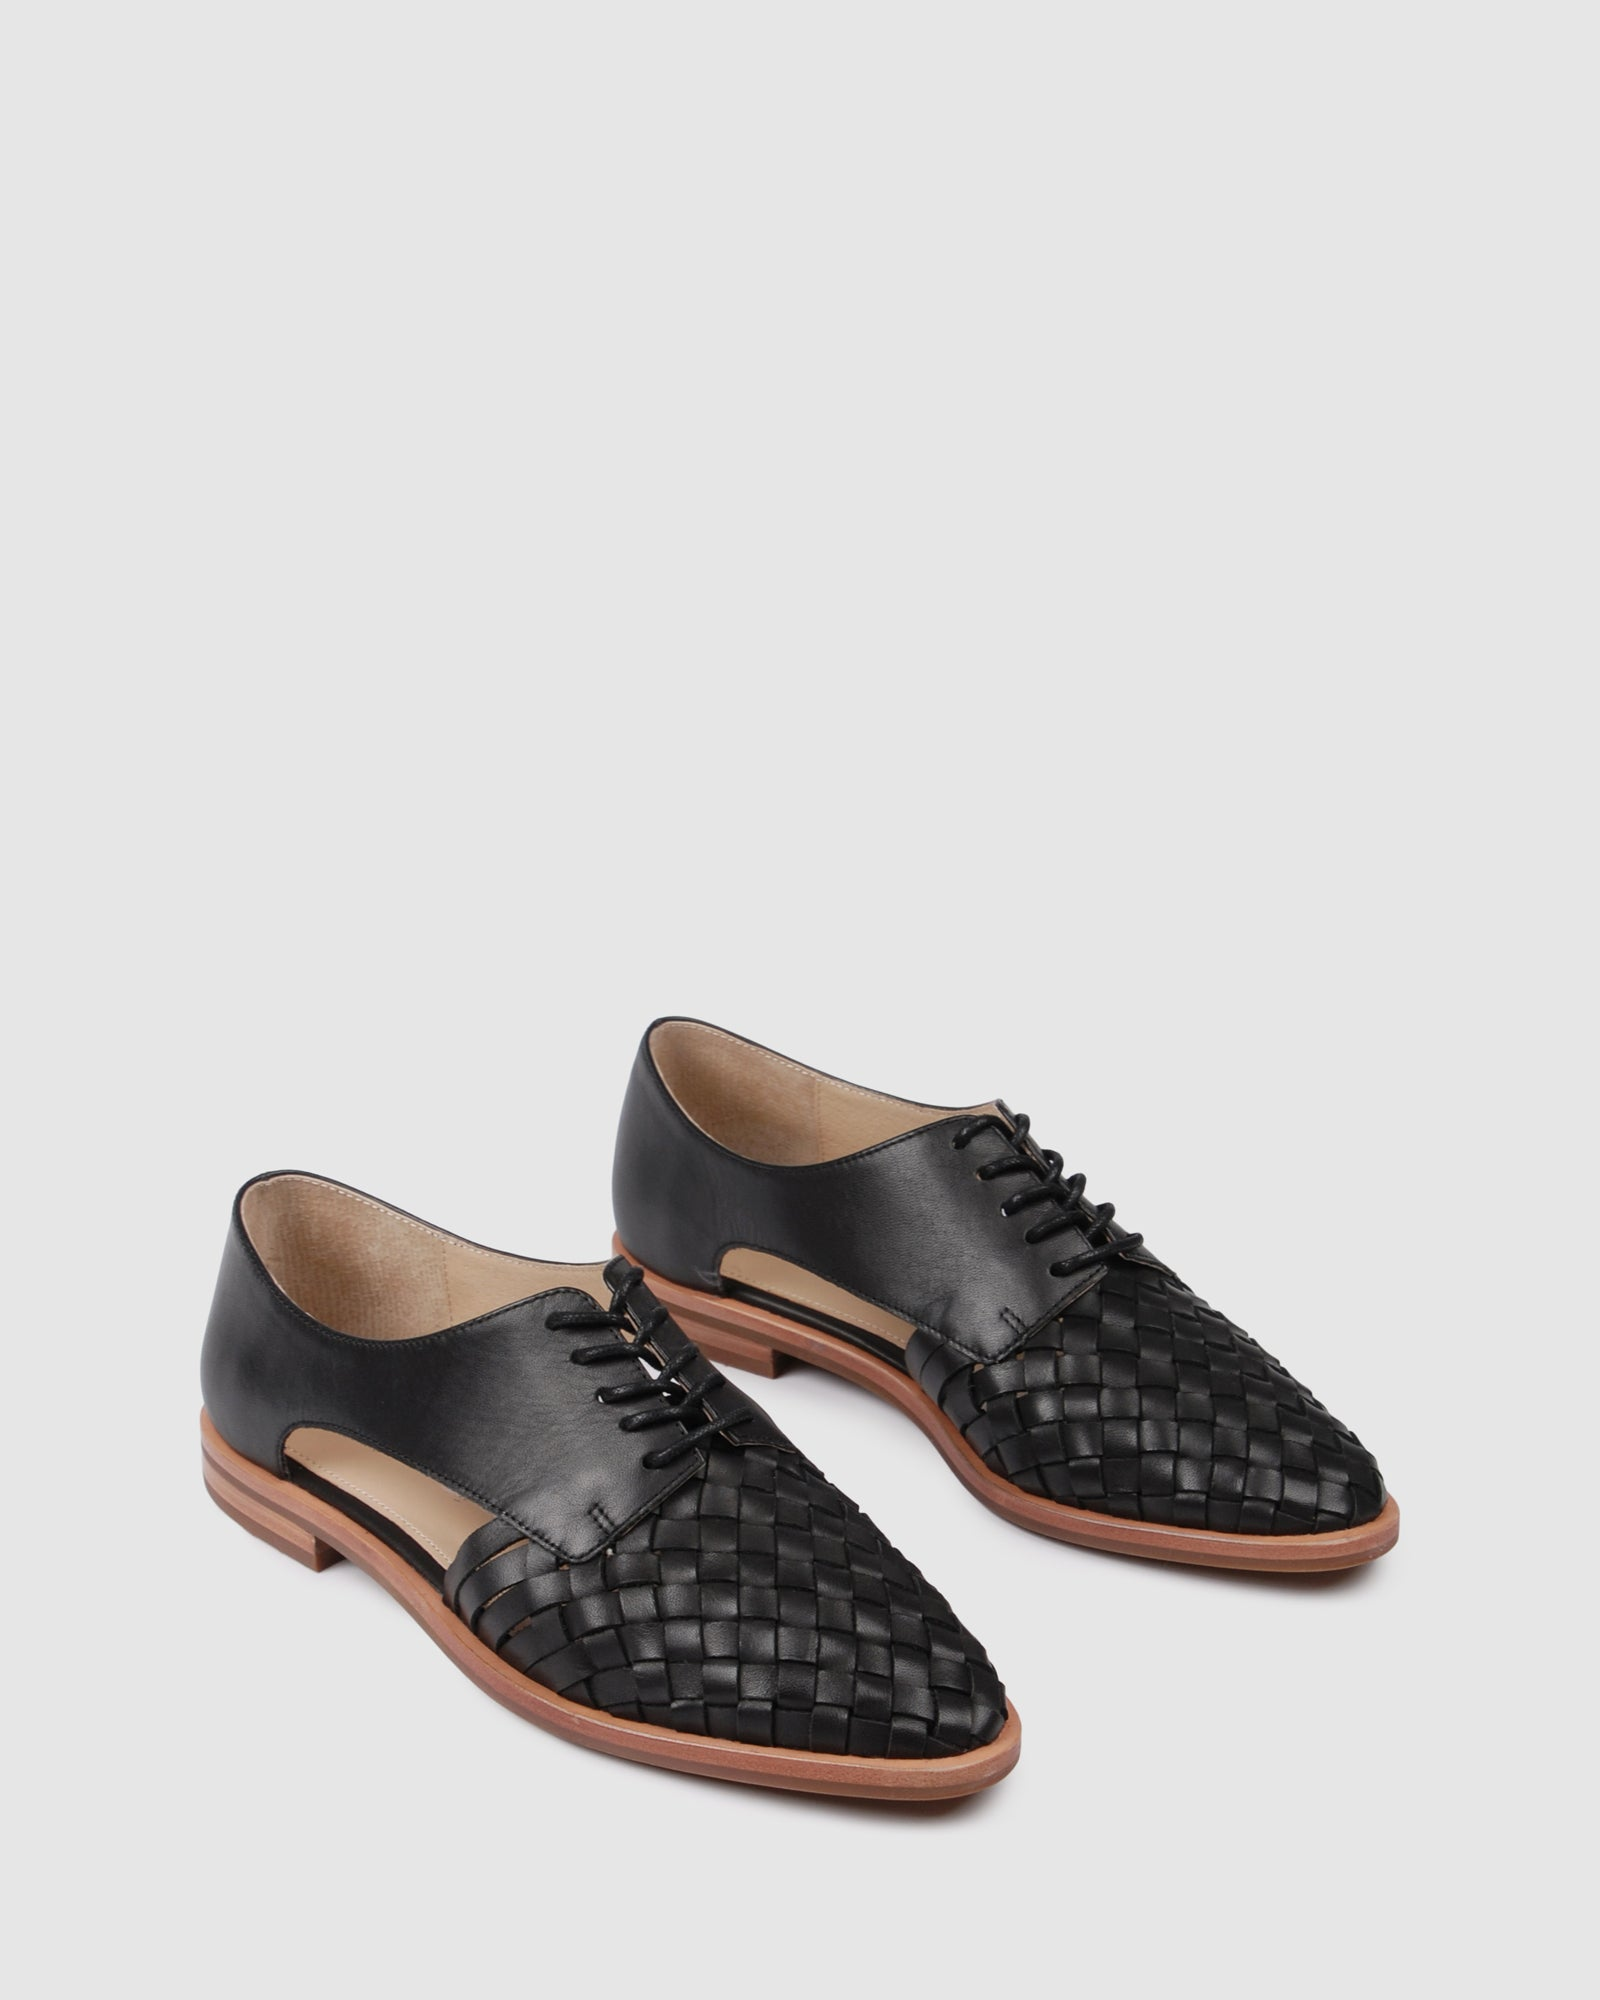 WREN CASUAL FLATS BLACK LEATHER